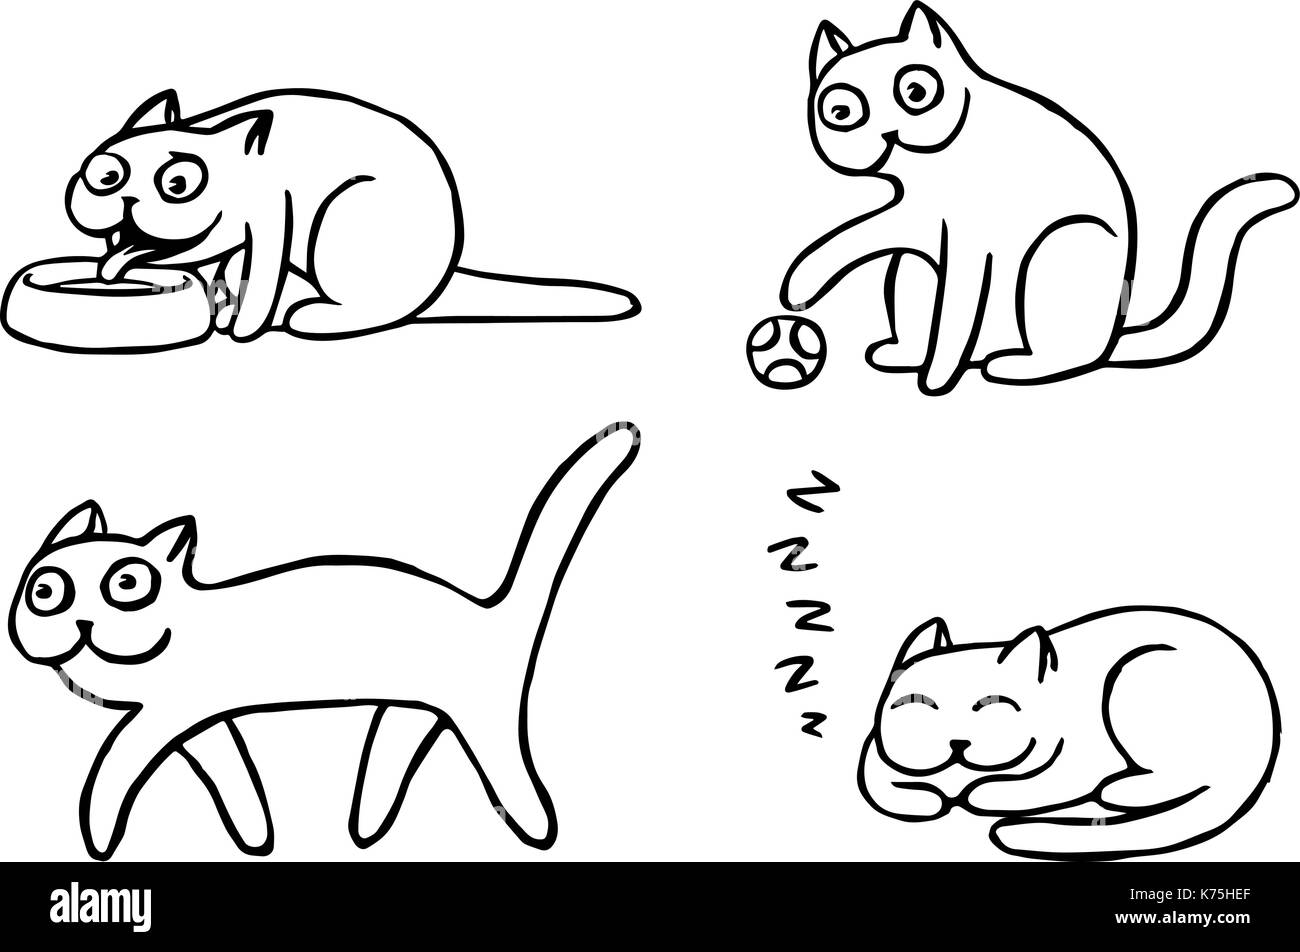 Pussycat emoticons set. Funny cartoon cool character. Contour digital drawing cute cats. White color background. Cheerful pet collection. Vector illus - Stock Image